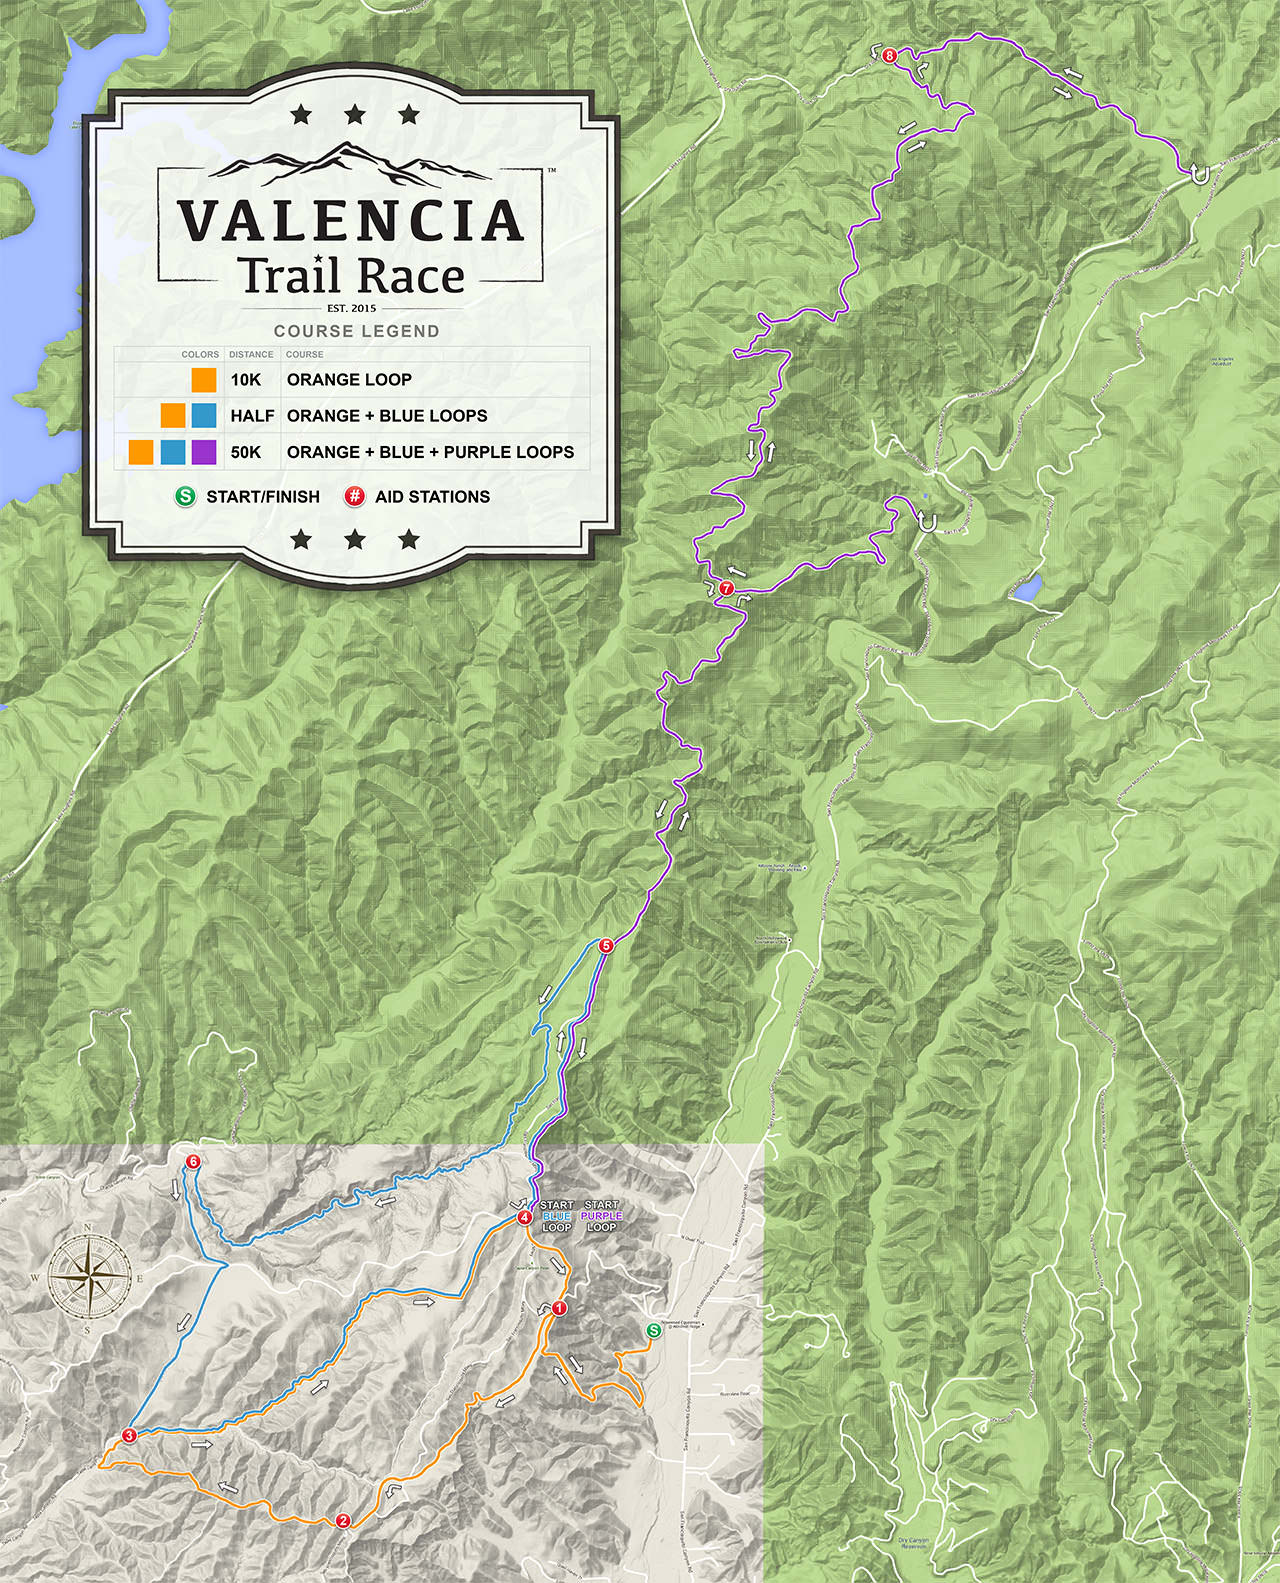 VALENCIA Trail Race - 50K Course